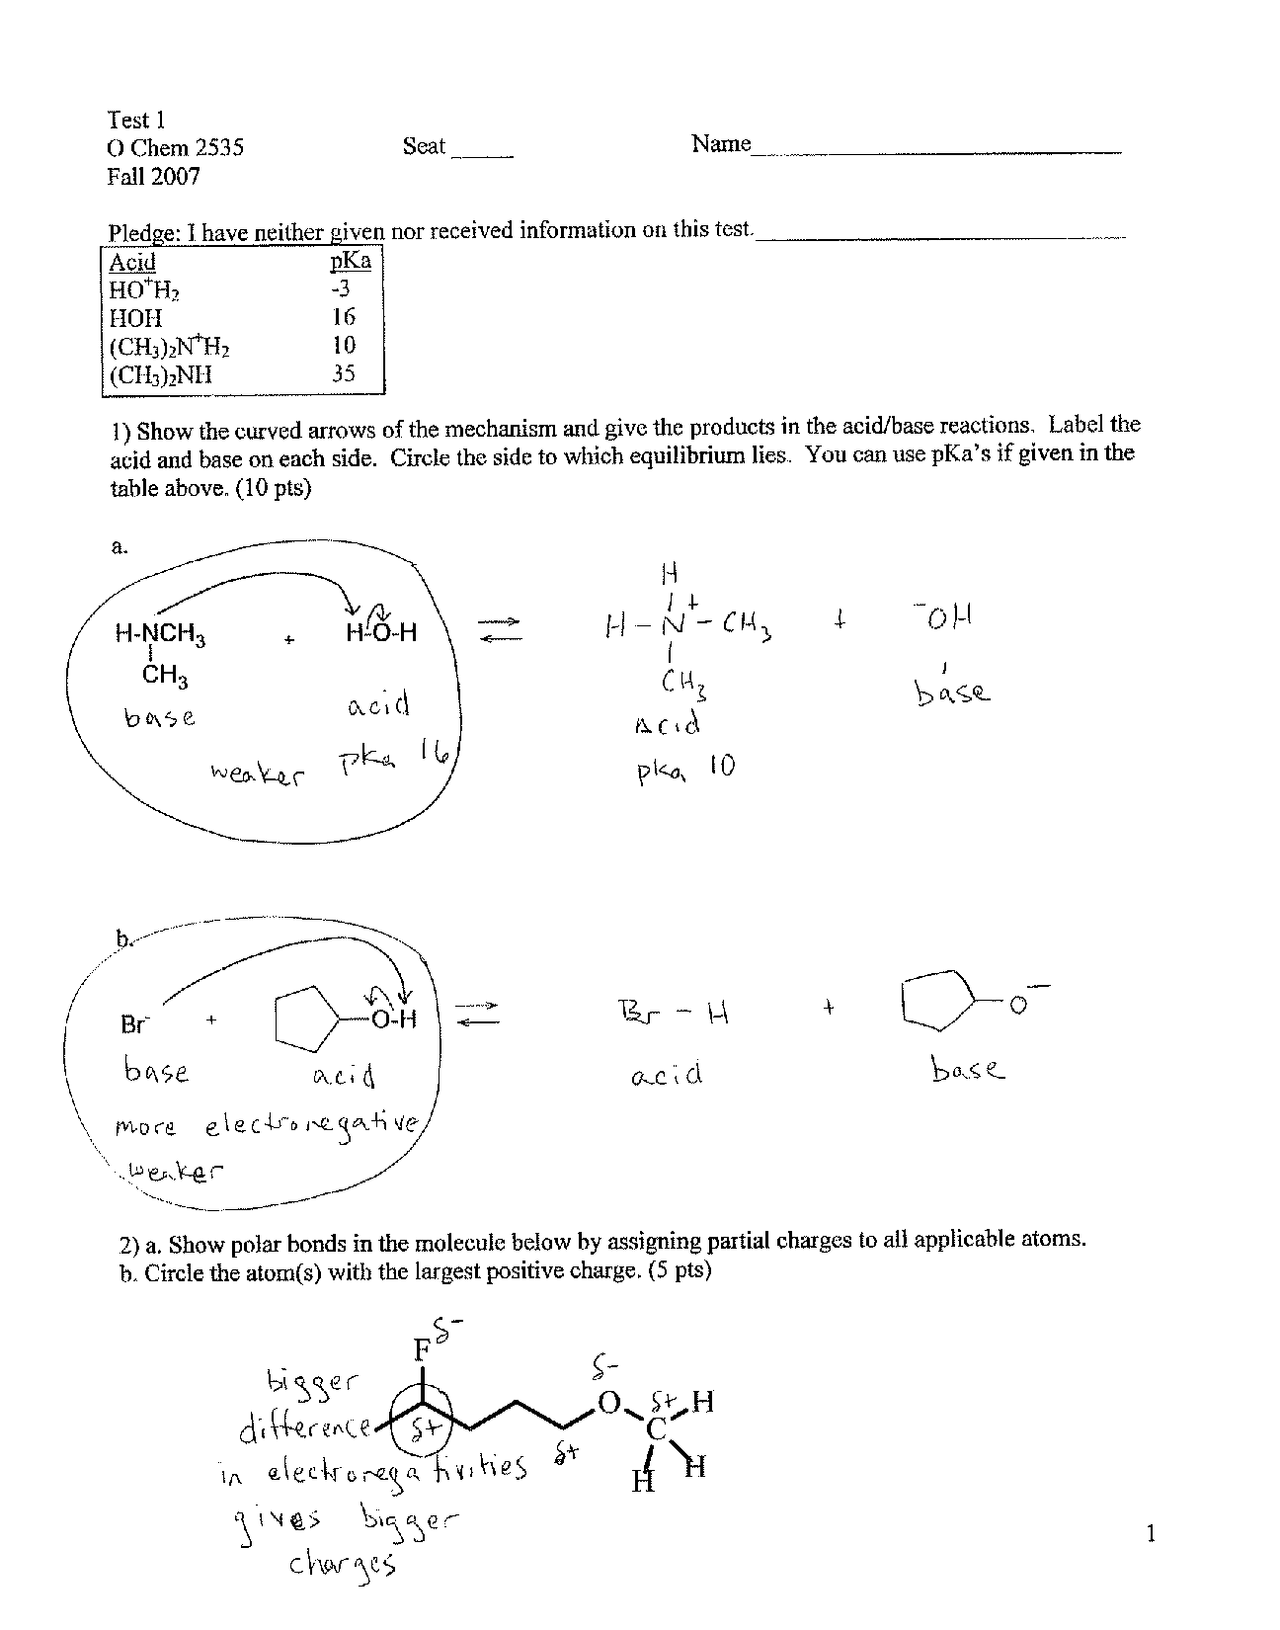 Test 1 Questions With Solutions Organic Chemistry Chem 2535 Docsity